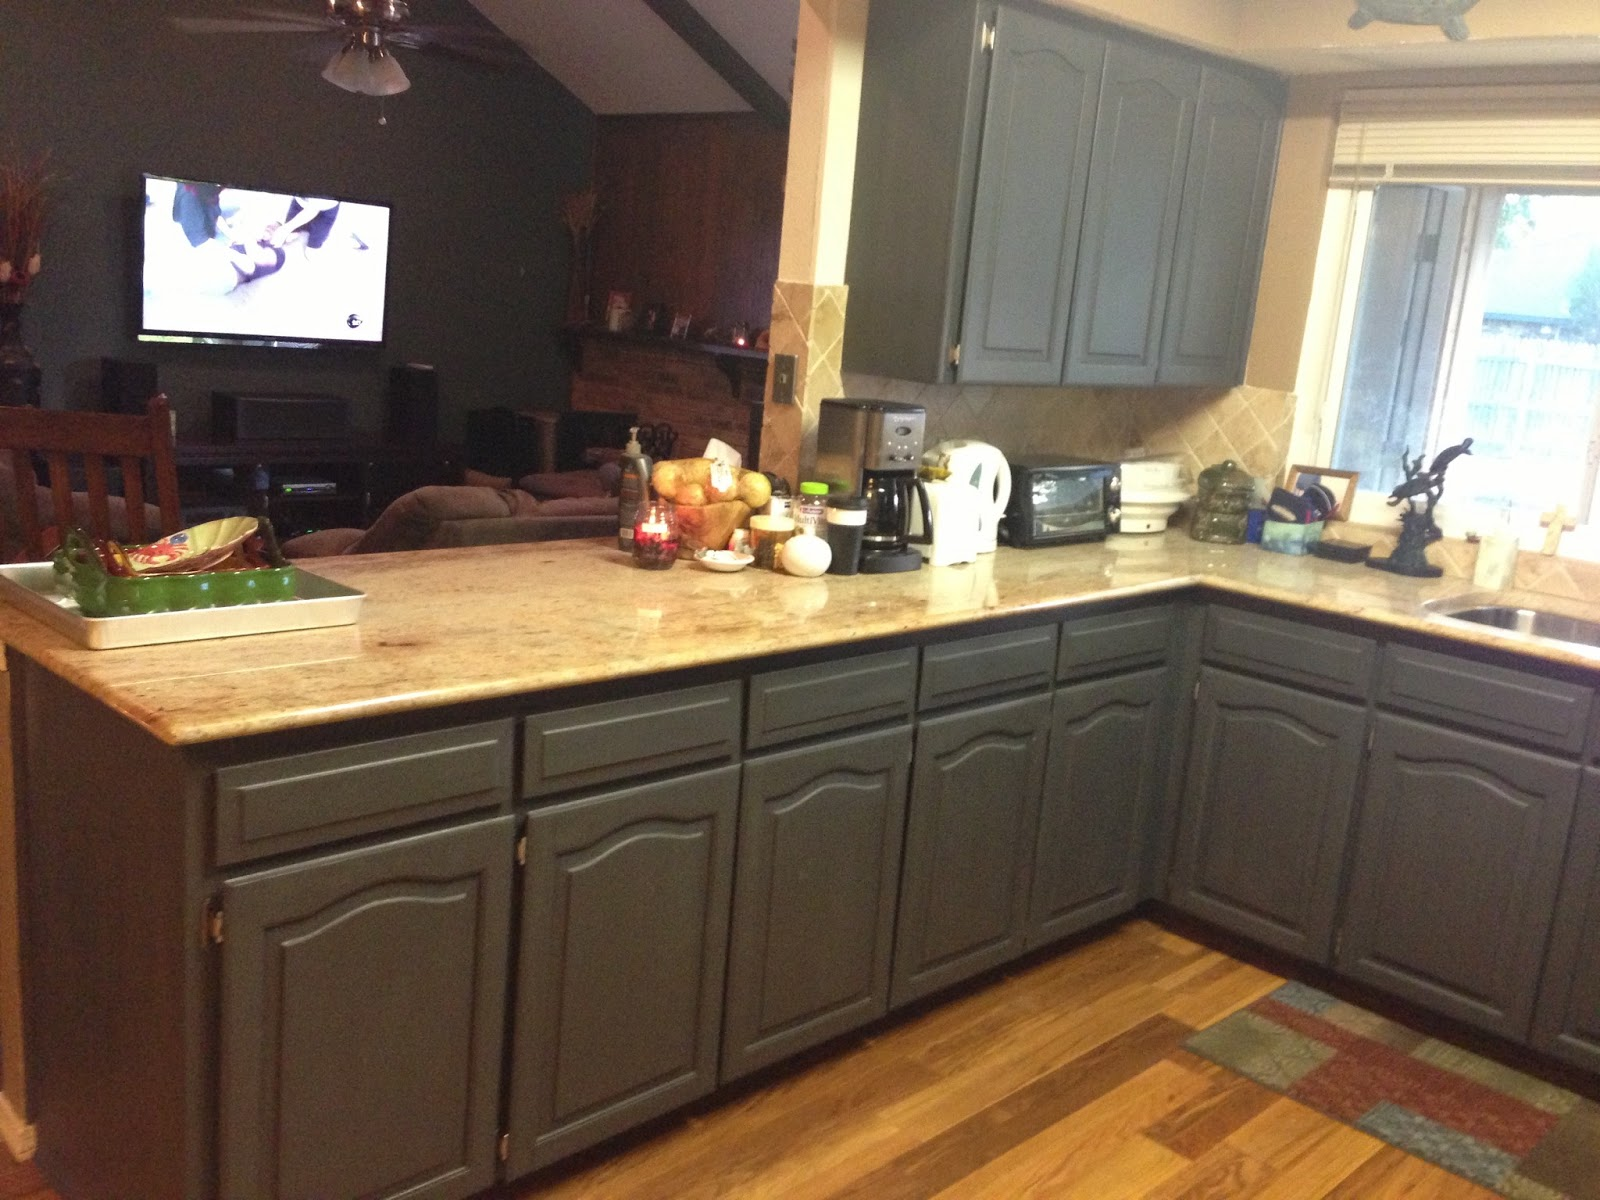 Wilker do 39 s using chalk paint to refinish kitchen cabinets for Can i paint kitchen cabinets with chalk paint